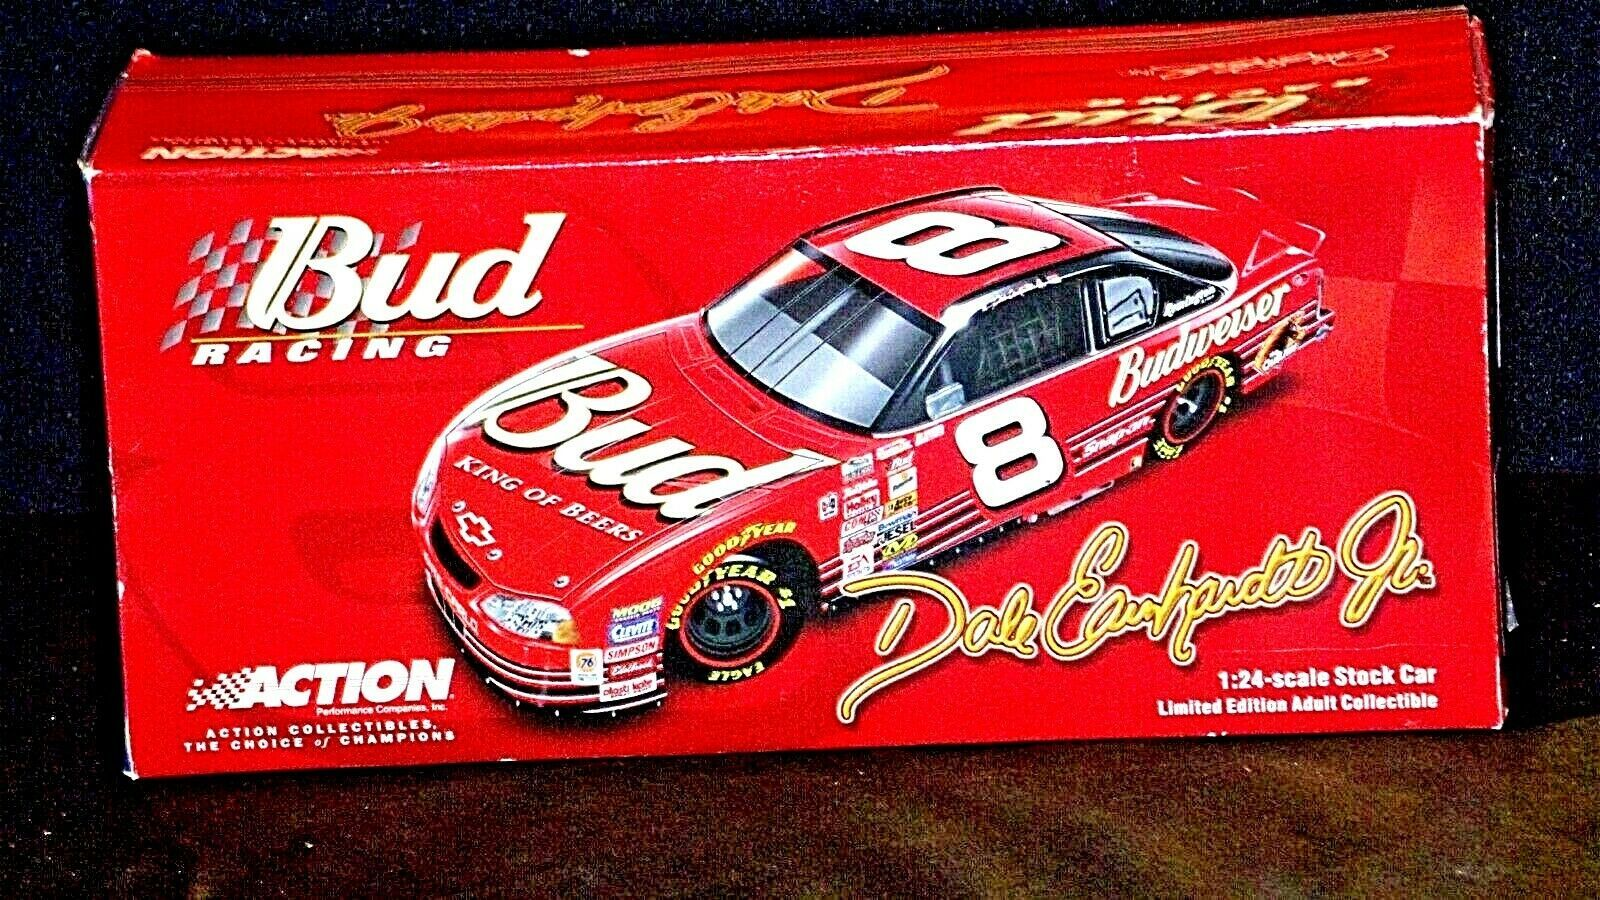 Bud Racing Dale Earnhardt Jr. #8 1:24 scale stock cars Limited Edition